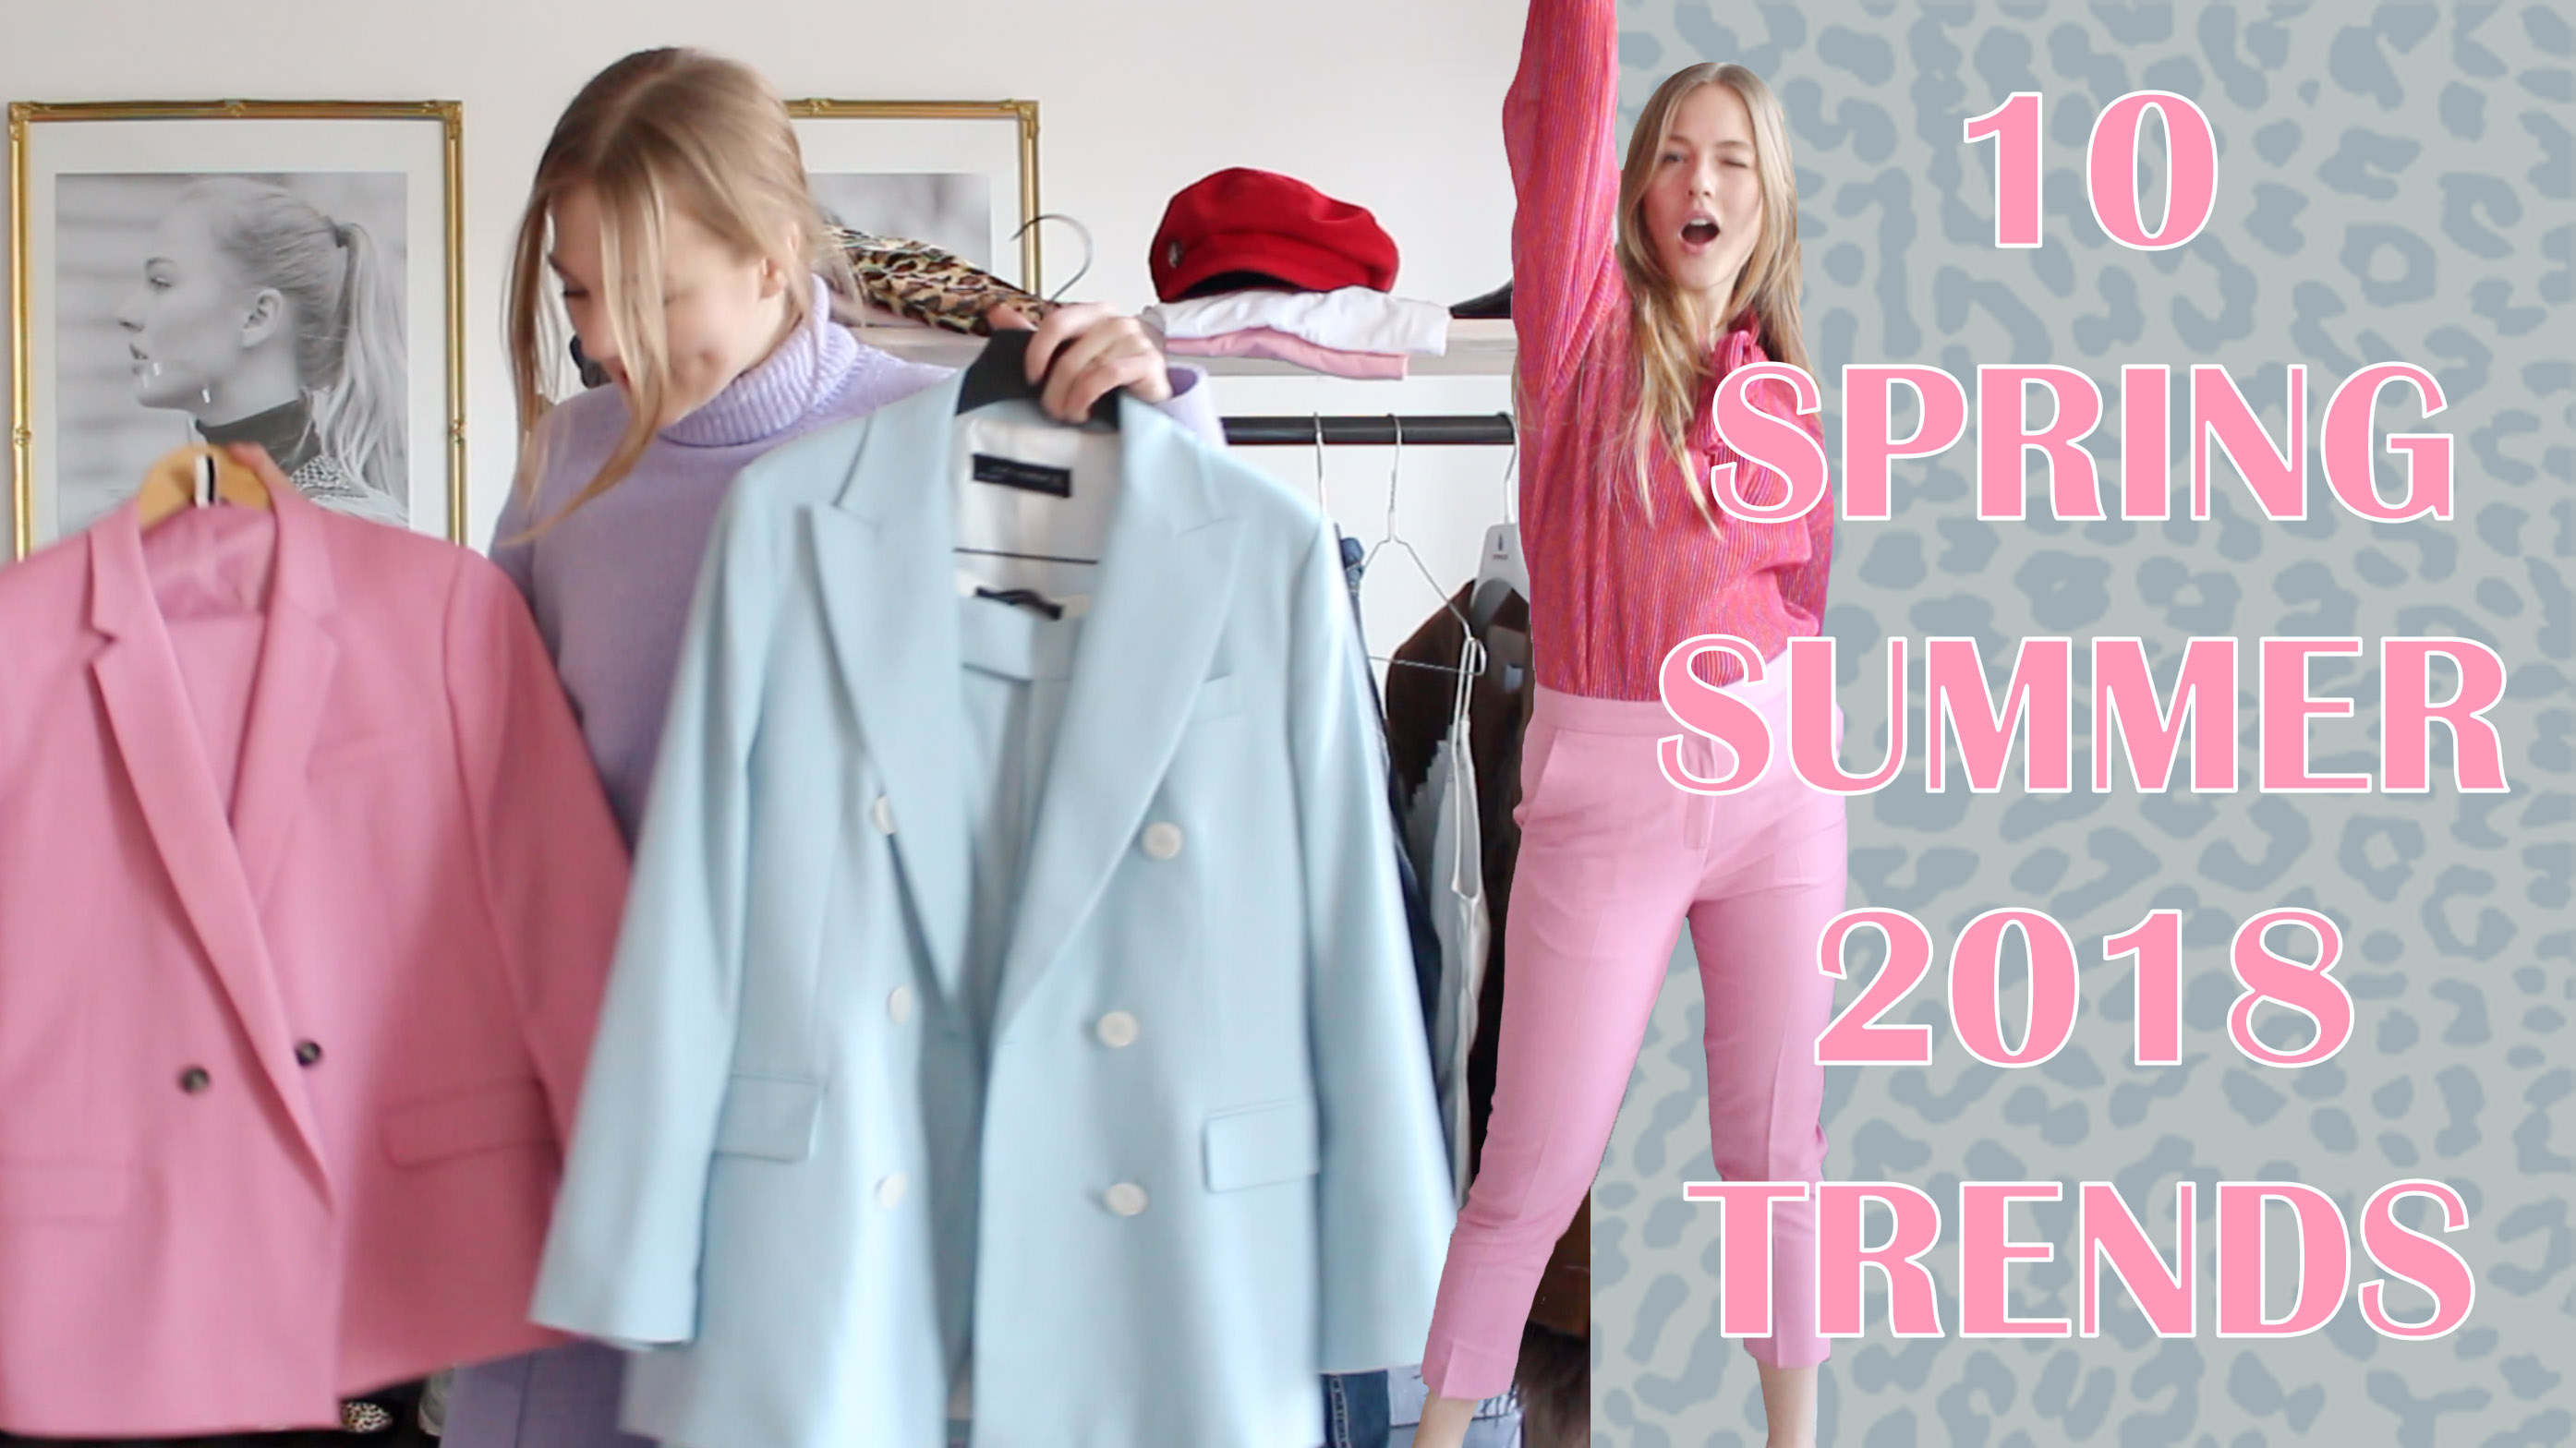 floortjeloves, styling, video, styling video, zara, suit, pastel suit, pastel suits, trends, ss trend, spring summer 2018 trends, spring summer trends, spring trends, summer trends